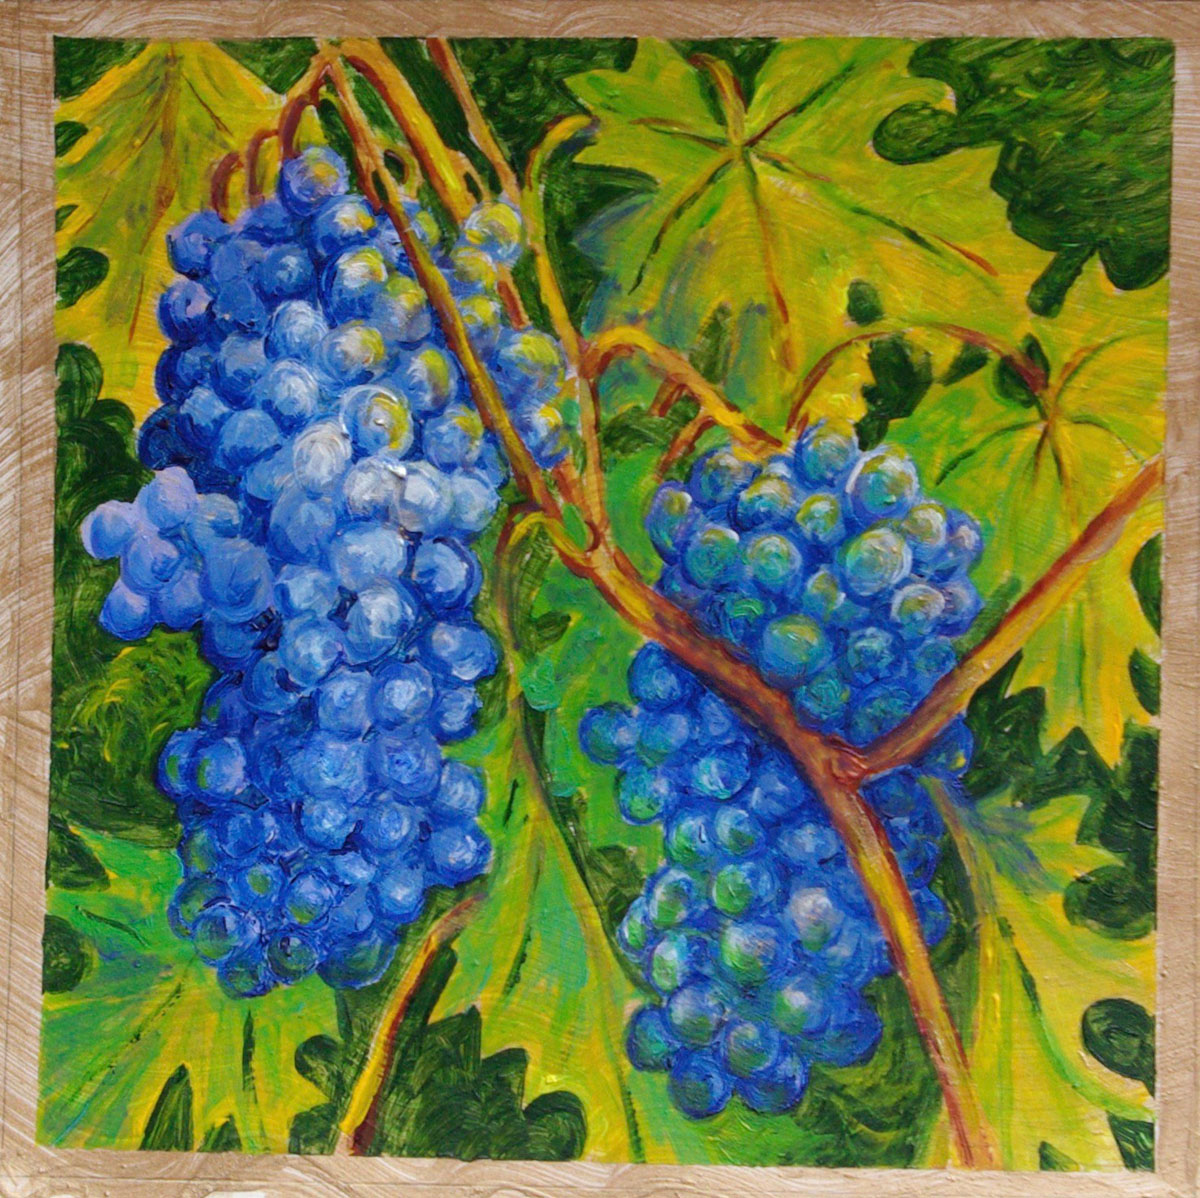 Grapes: acrylic painting